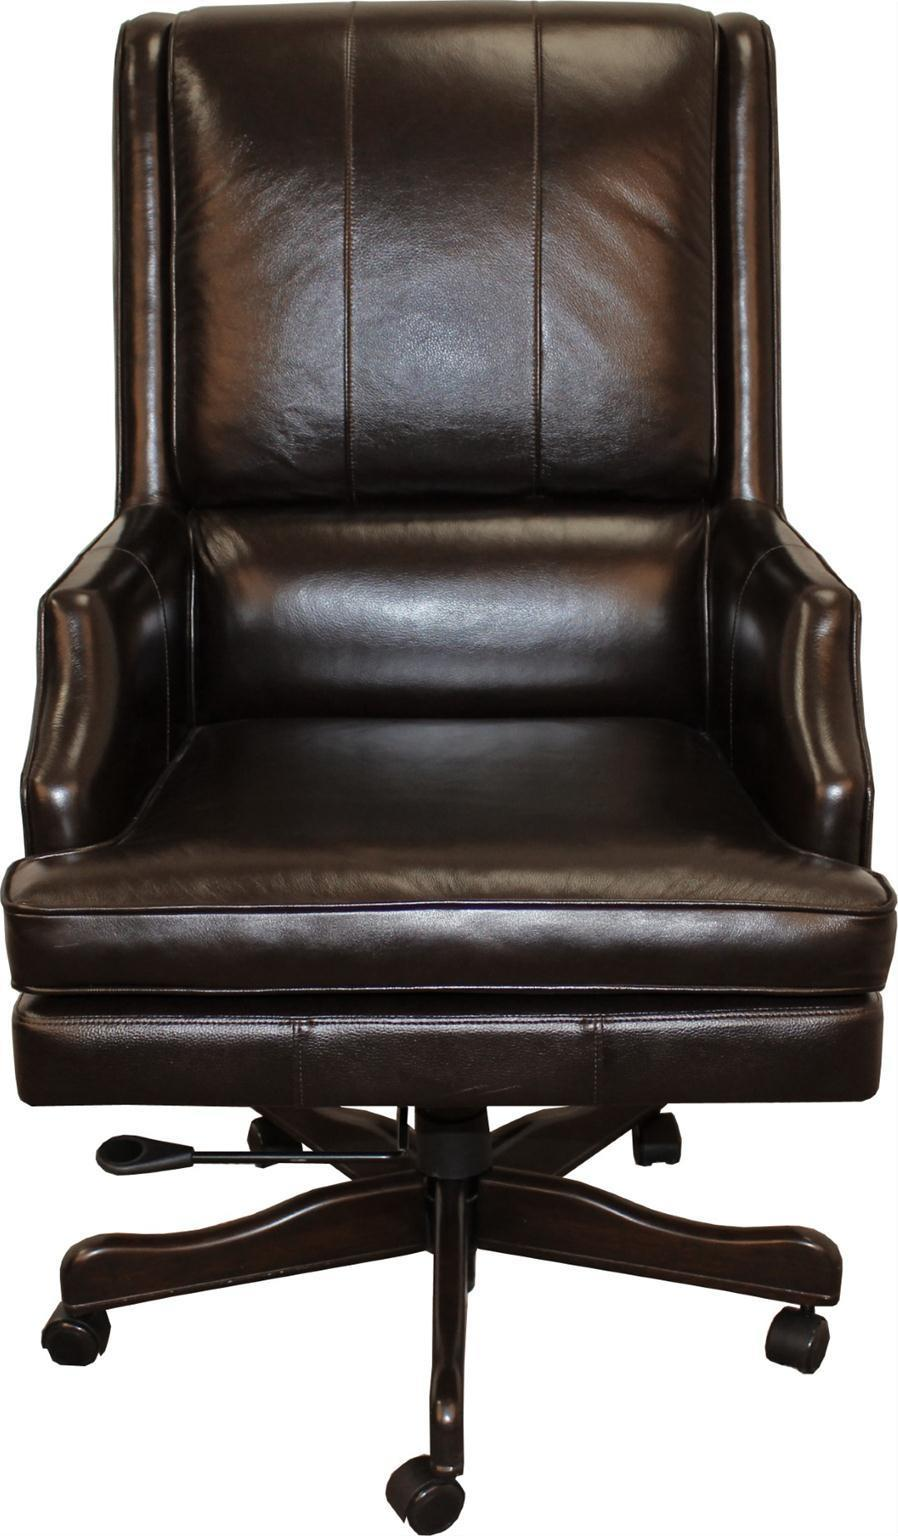 Morris Home Furnishings Easton Easton Leather Desk Chair - Item Number: 843166384